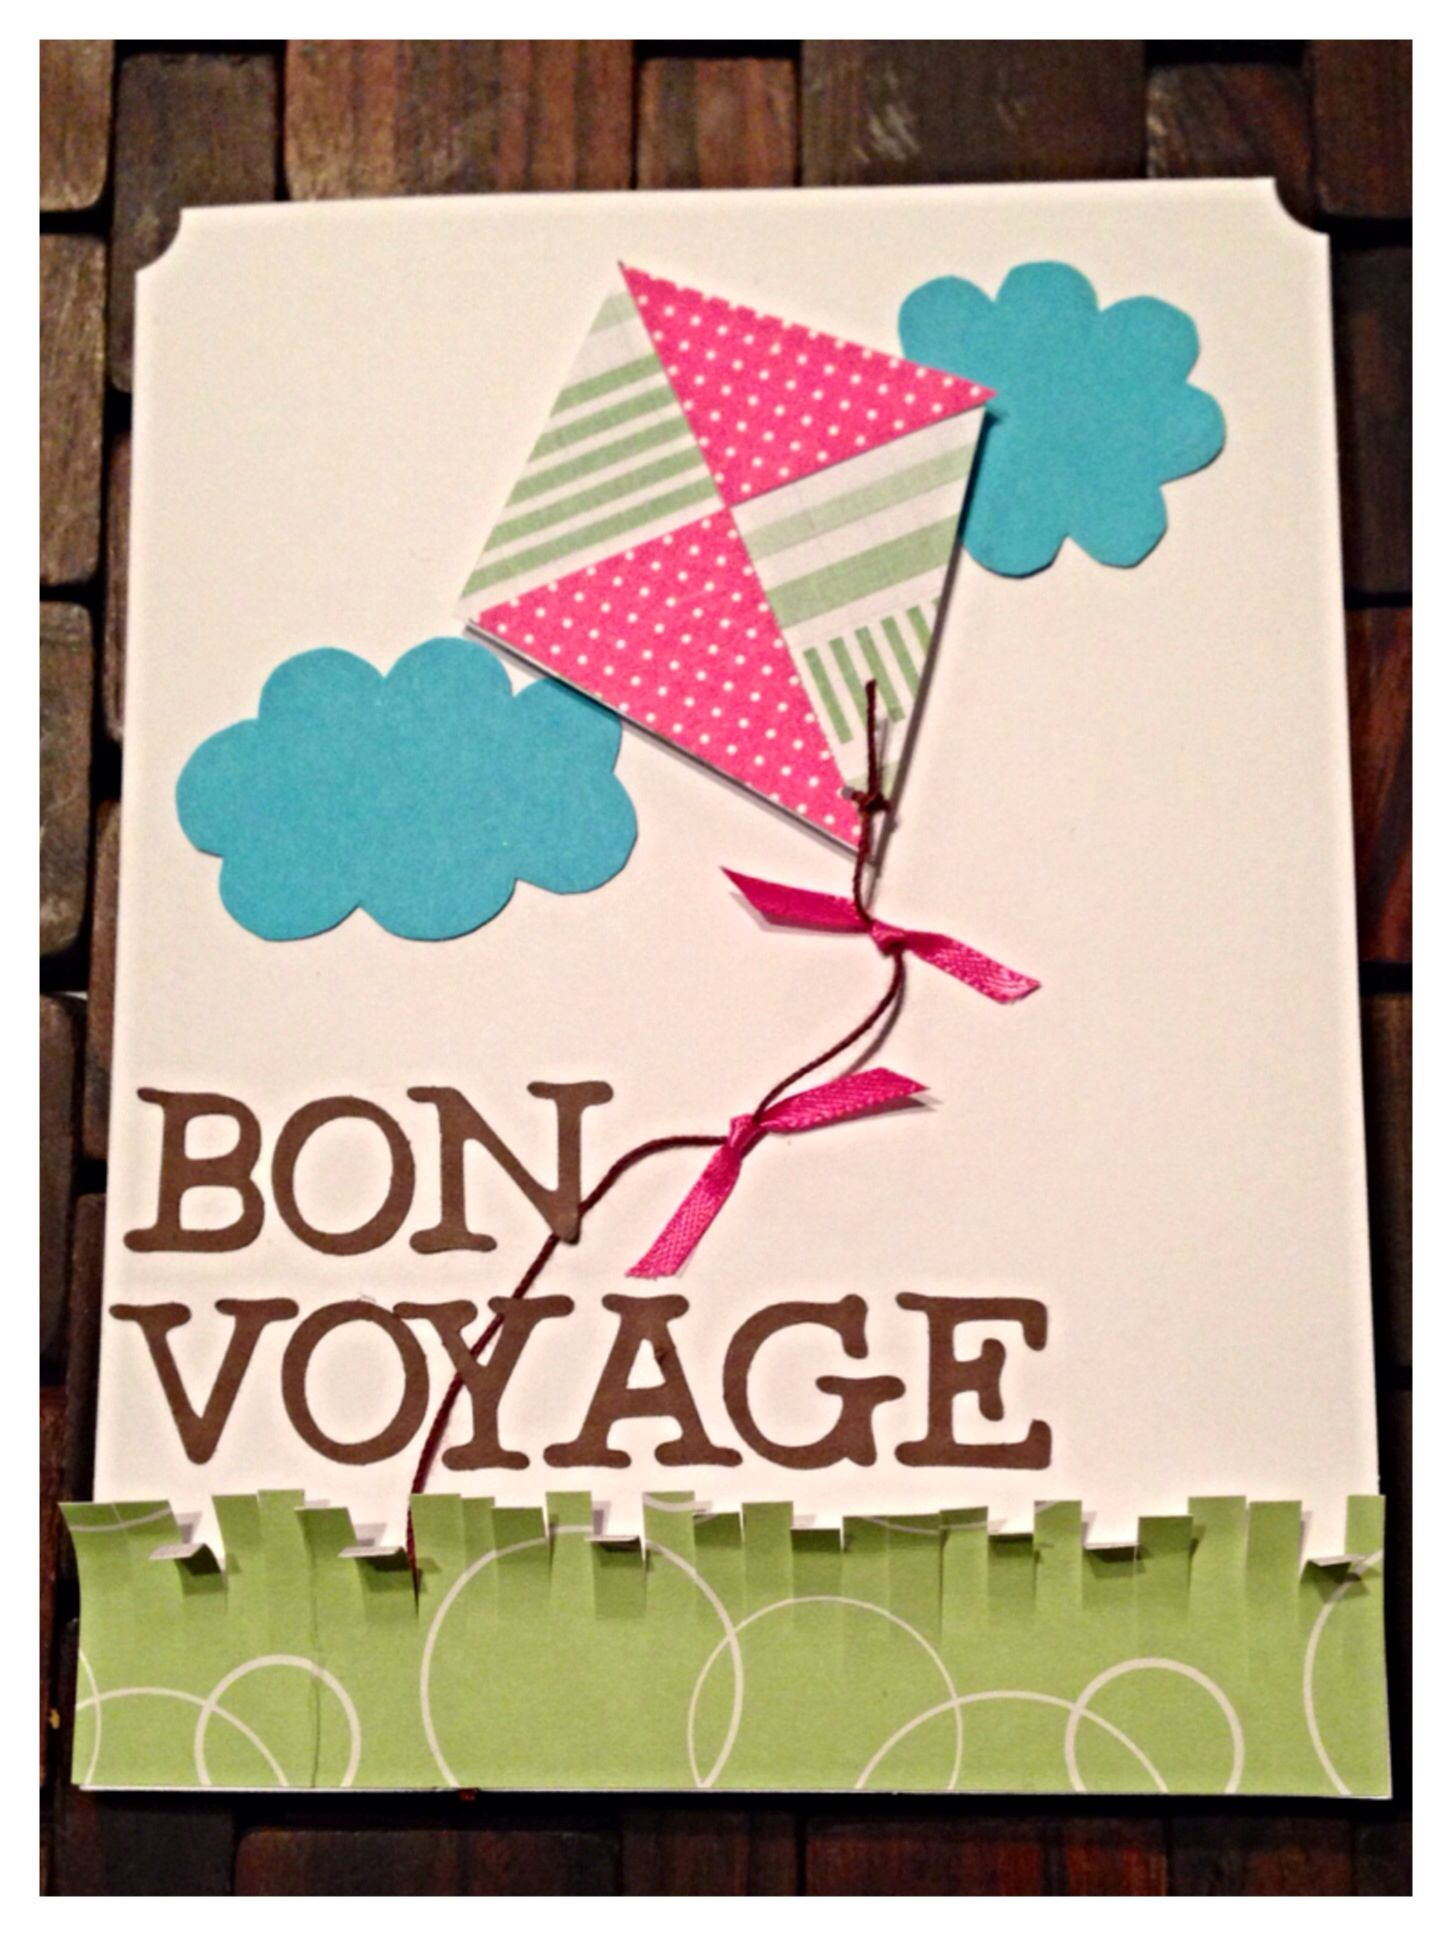 Bon voyage kite going away card crafts byashley pinterest bon voyage kite going away card kristyandbryce Image collections